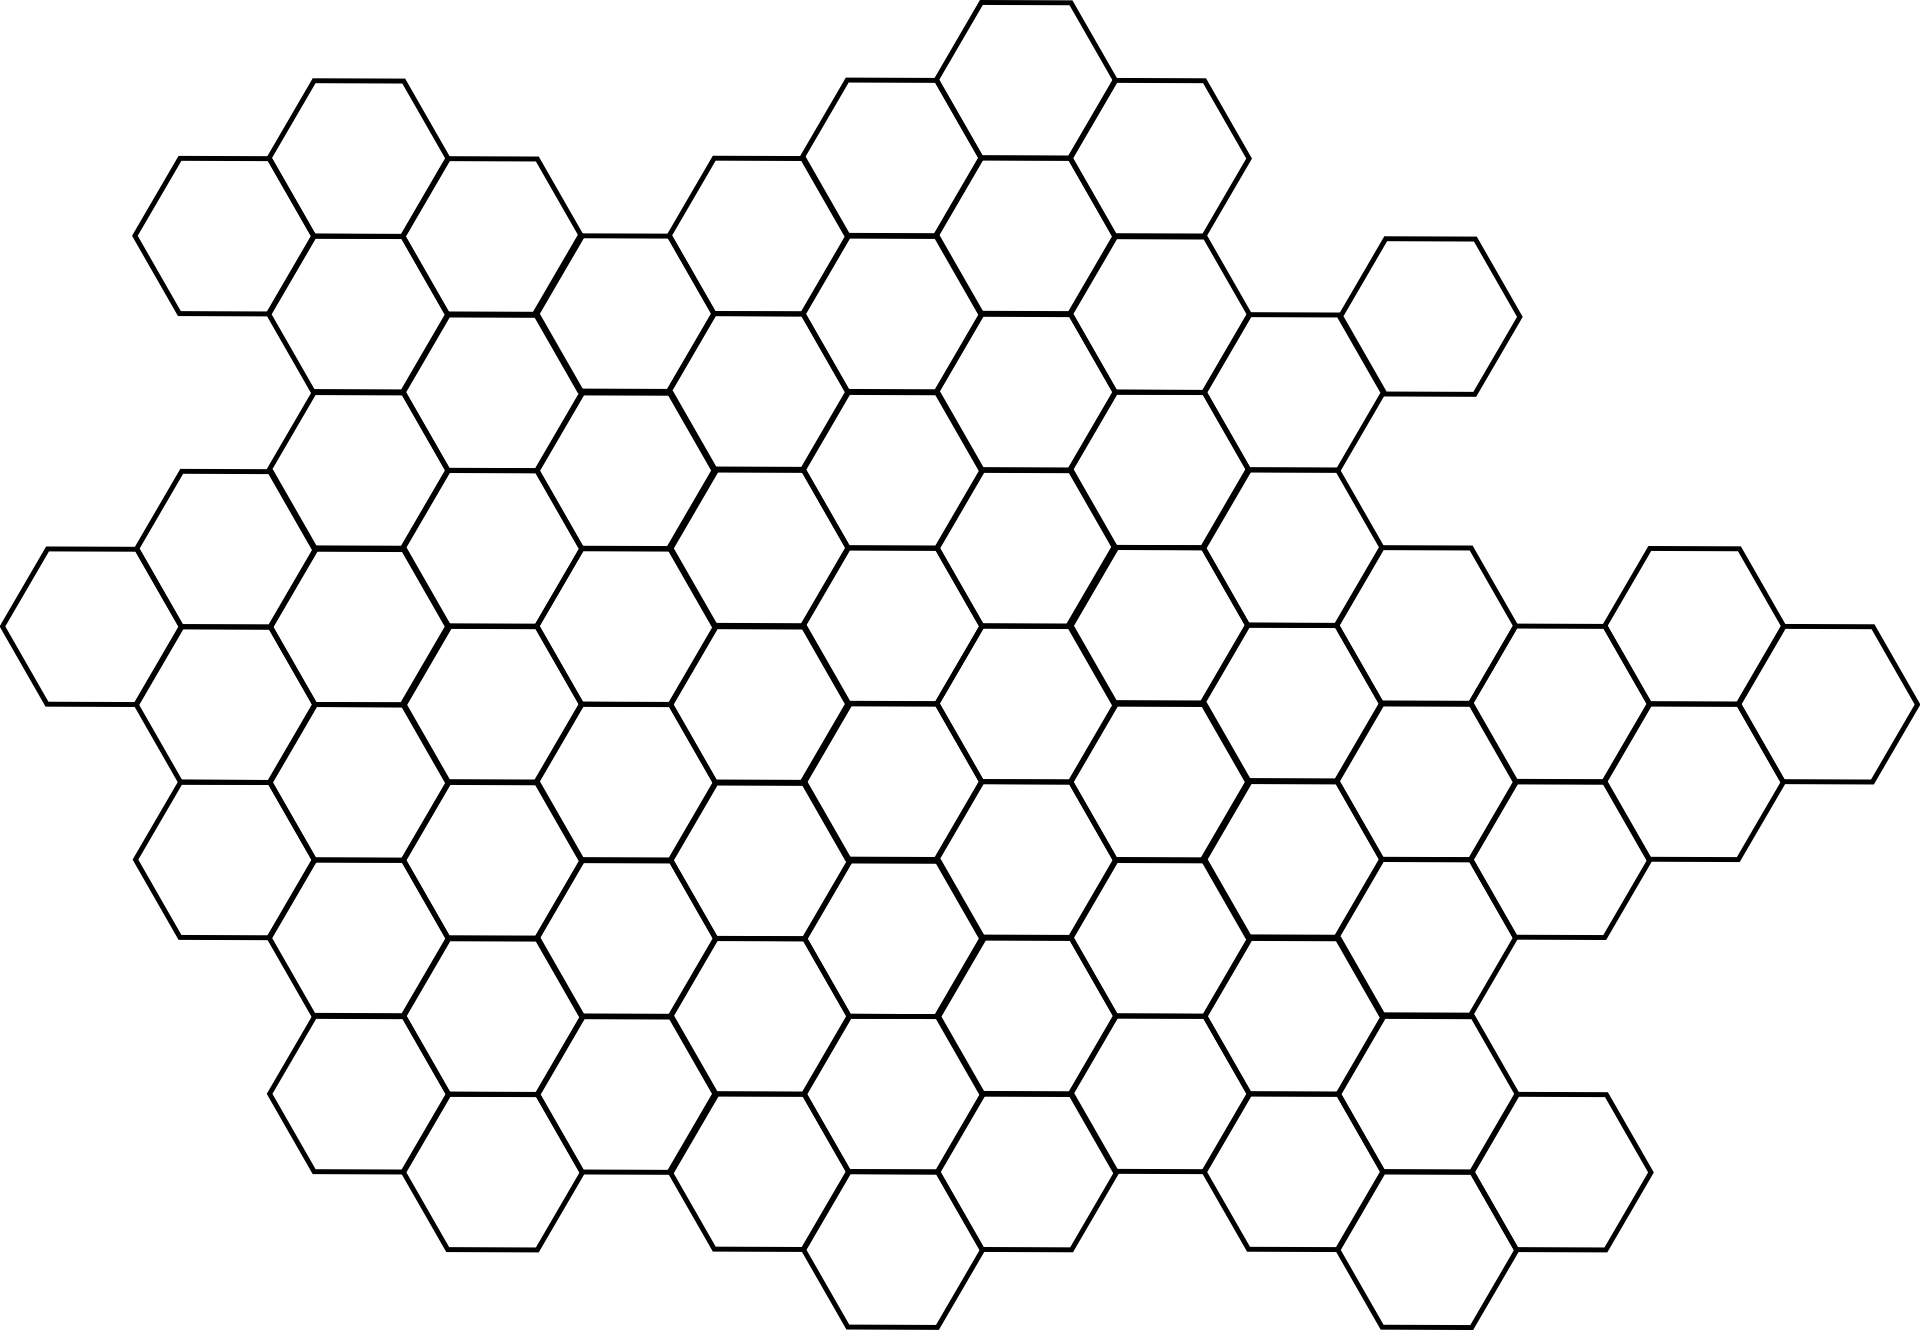 banner transparent Honeycomb grid hexagon Patterns